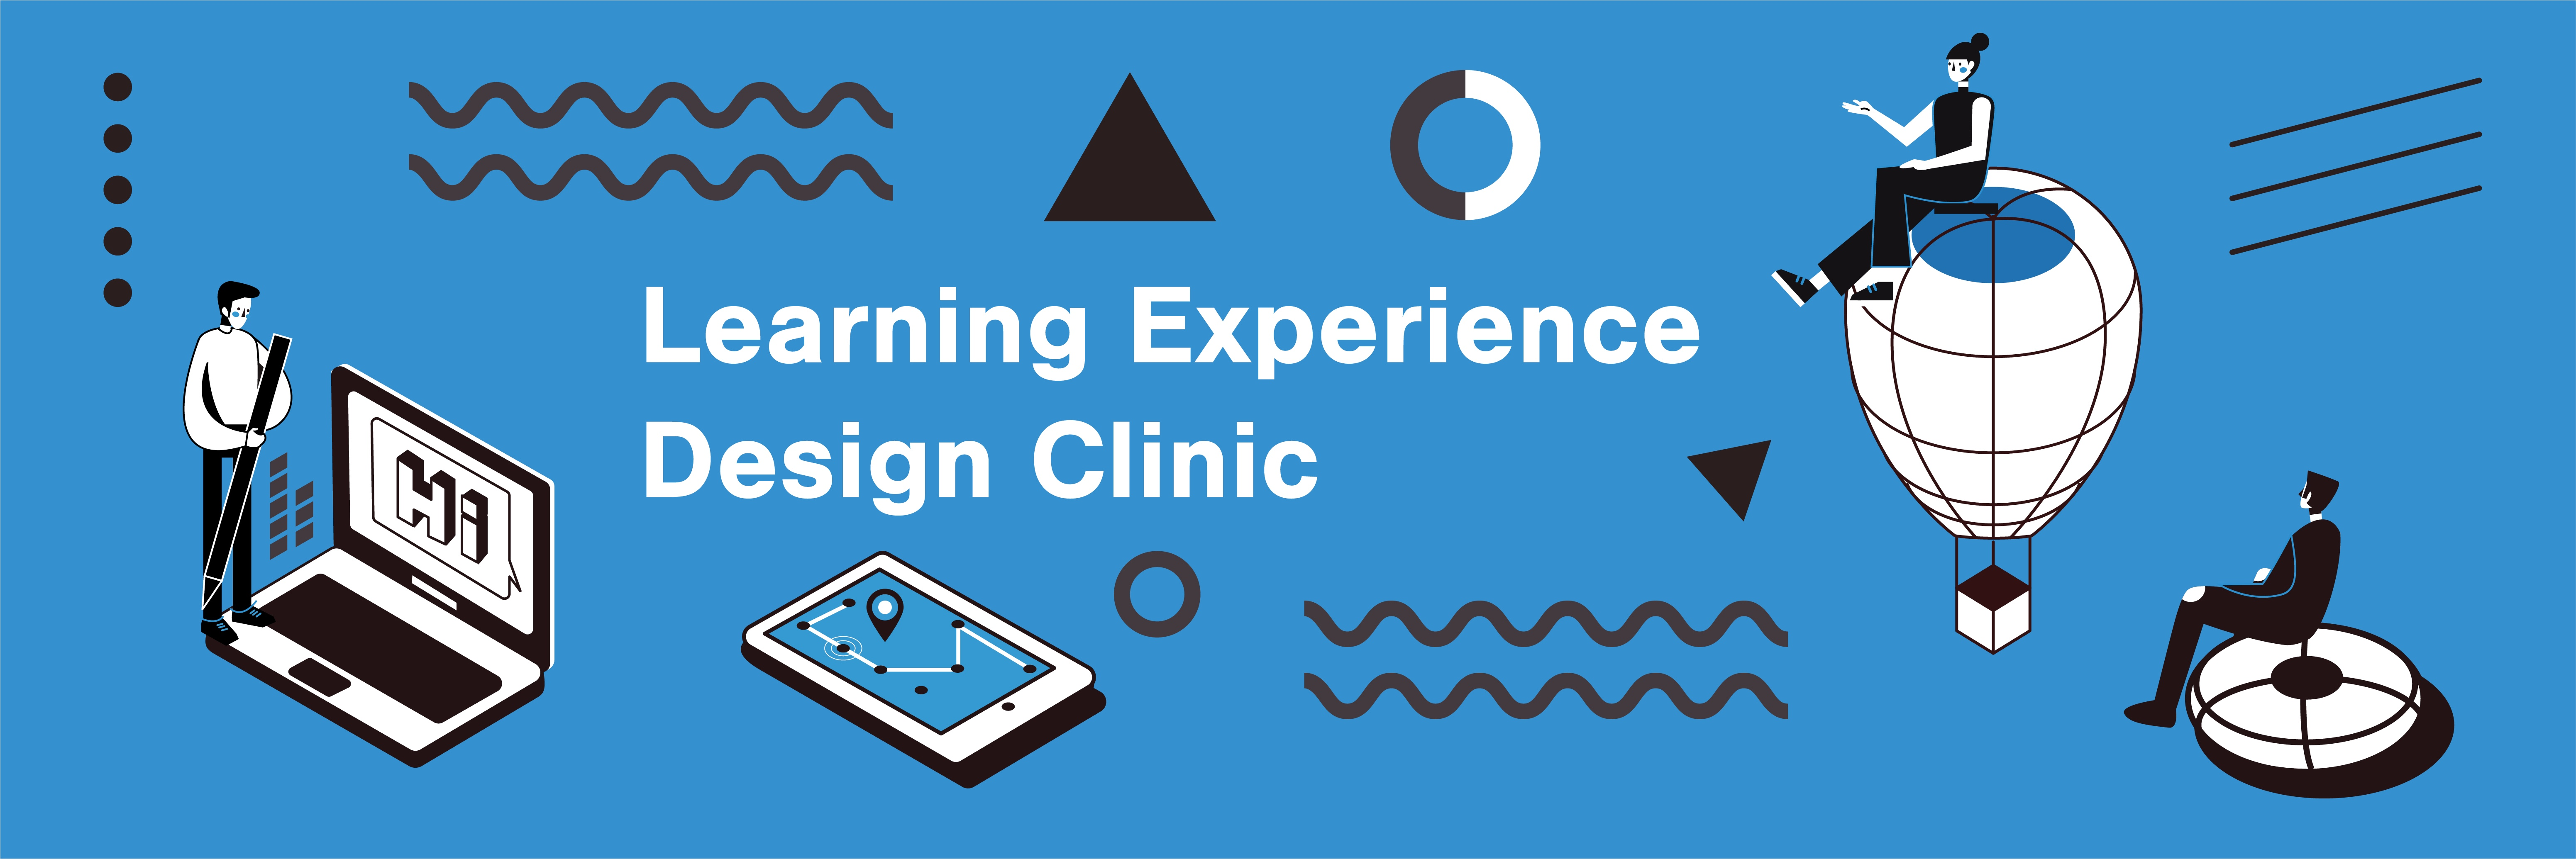 Learning Experience Design Clinic